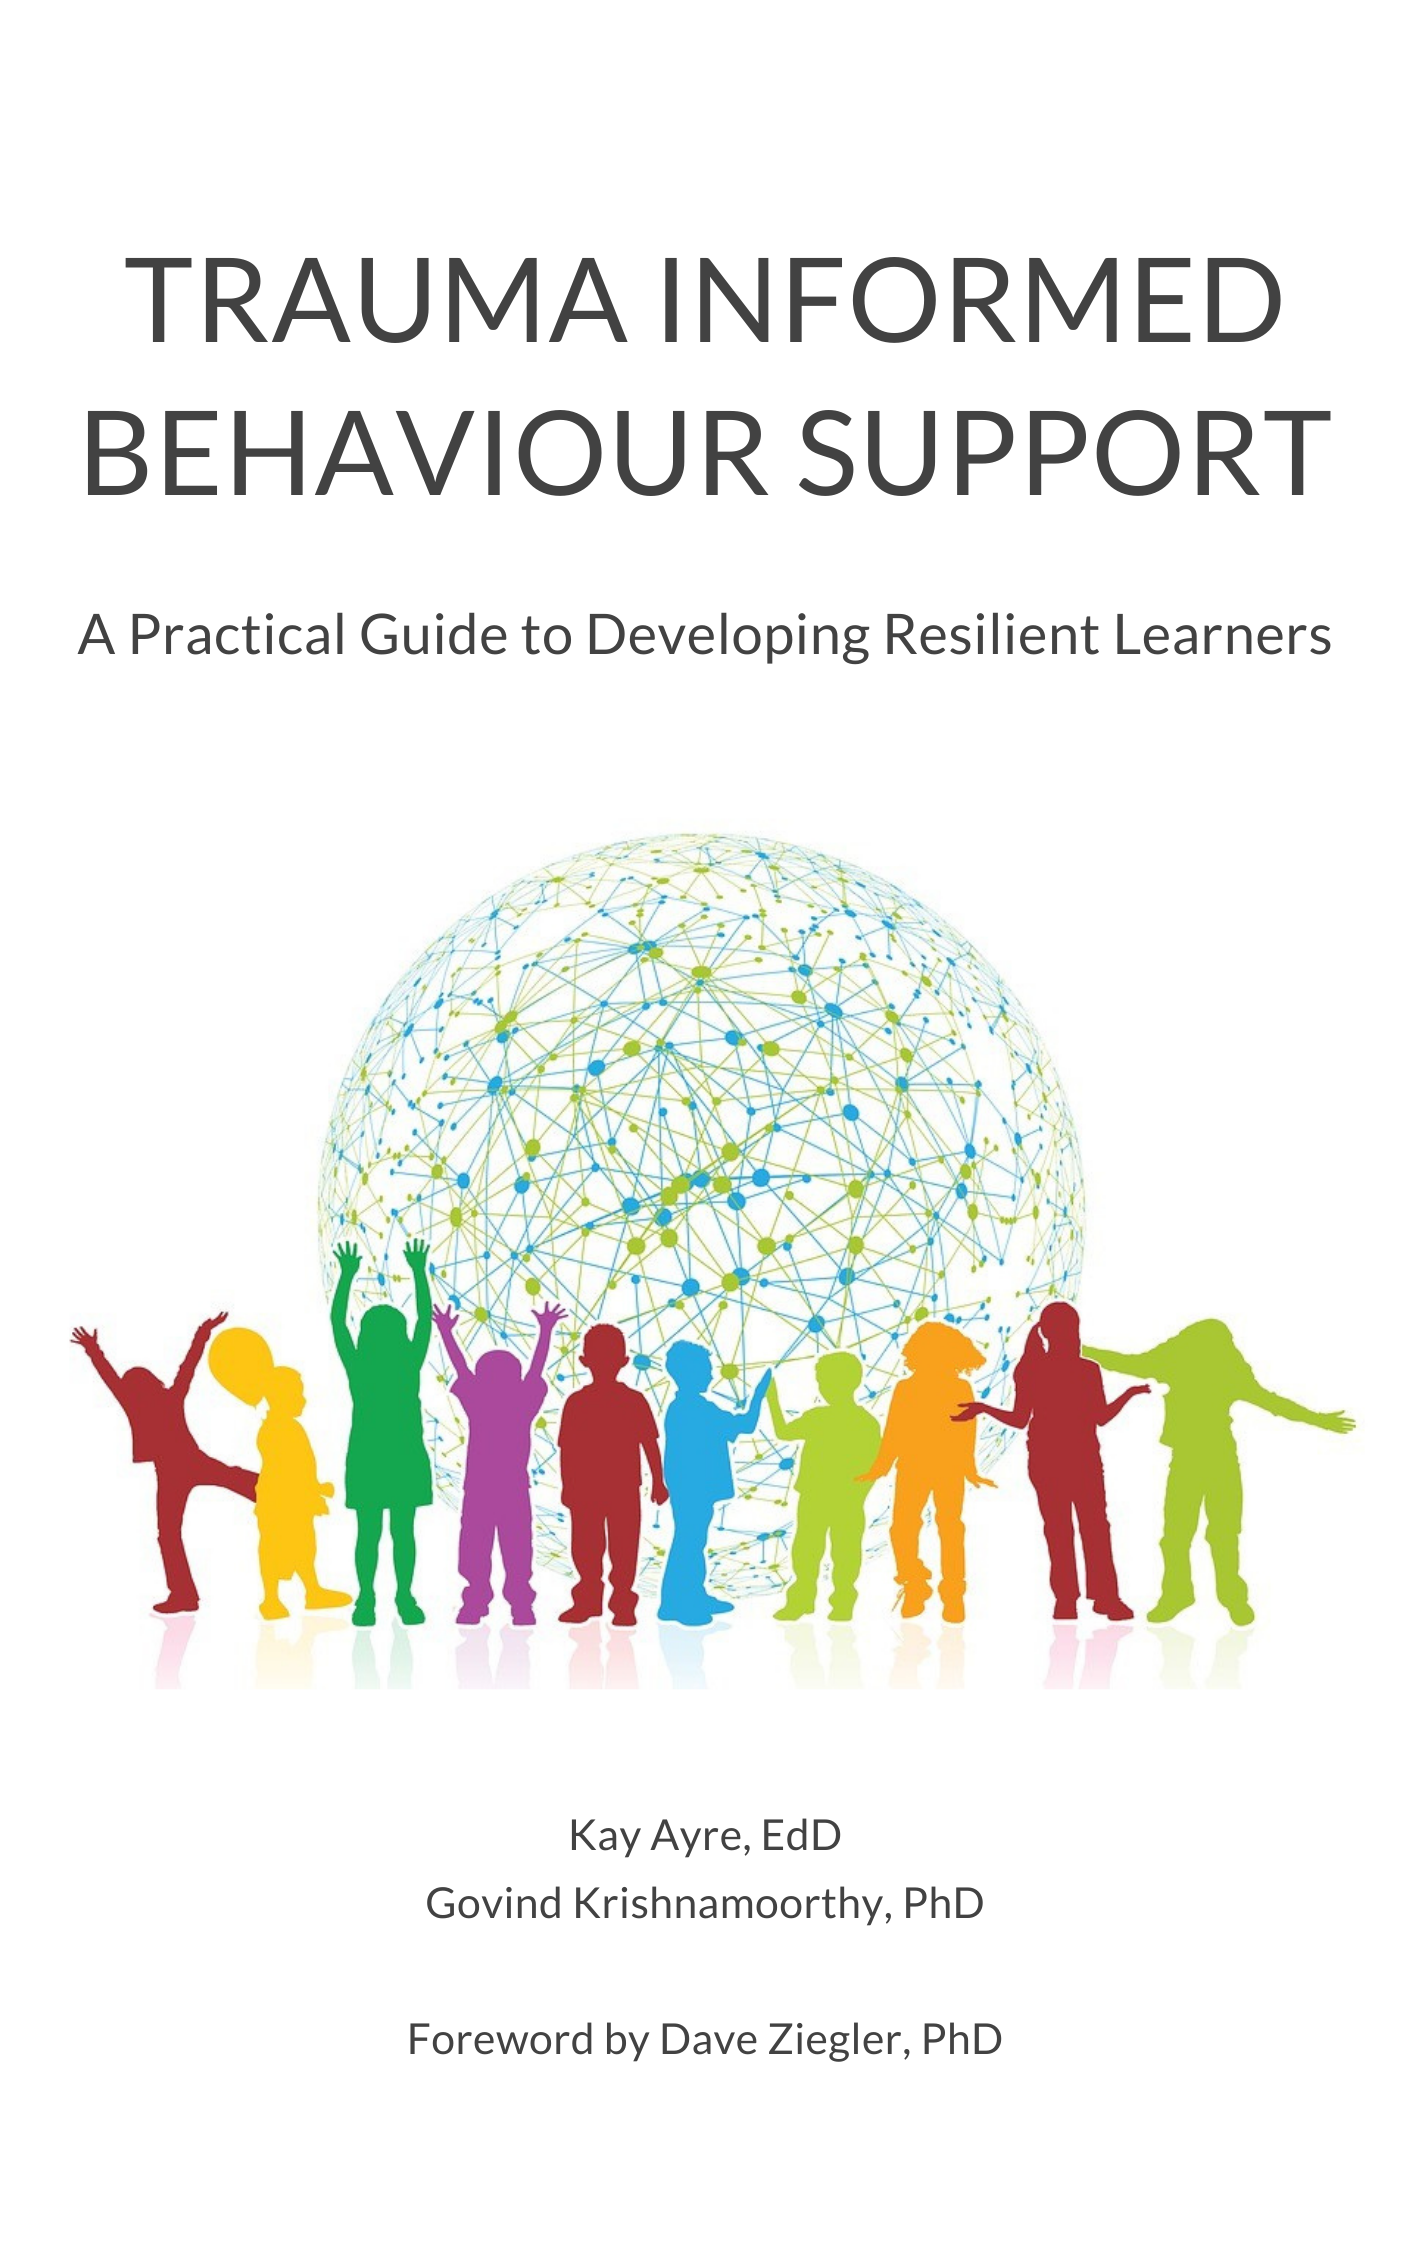 Cover image for Trauma Informed Behaviour Support: A Practical Guide to Developing Resilient Learners